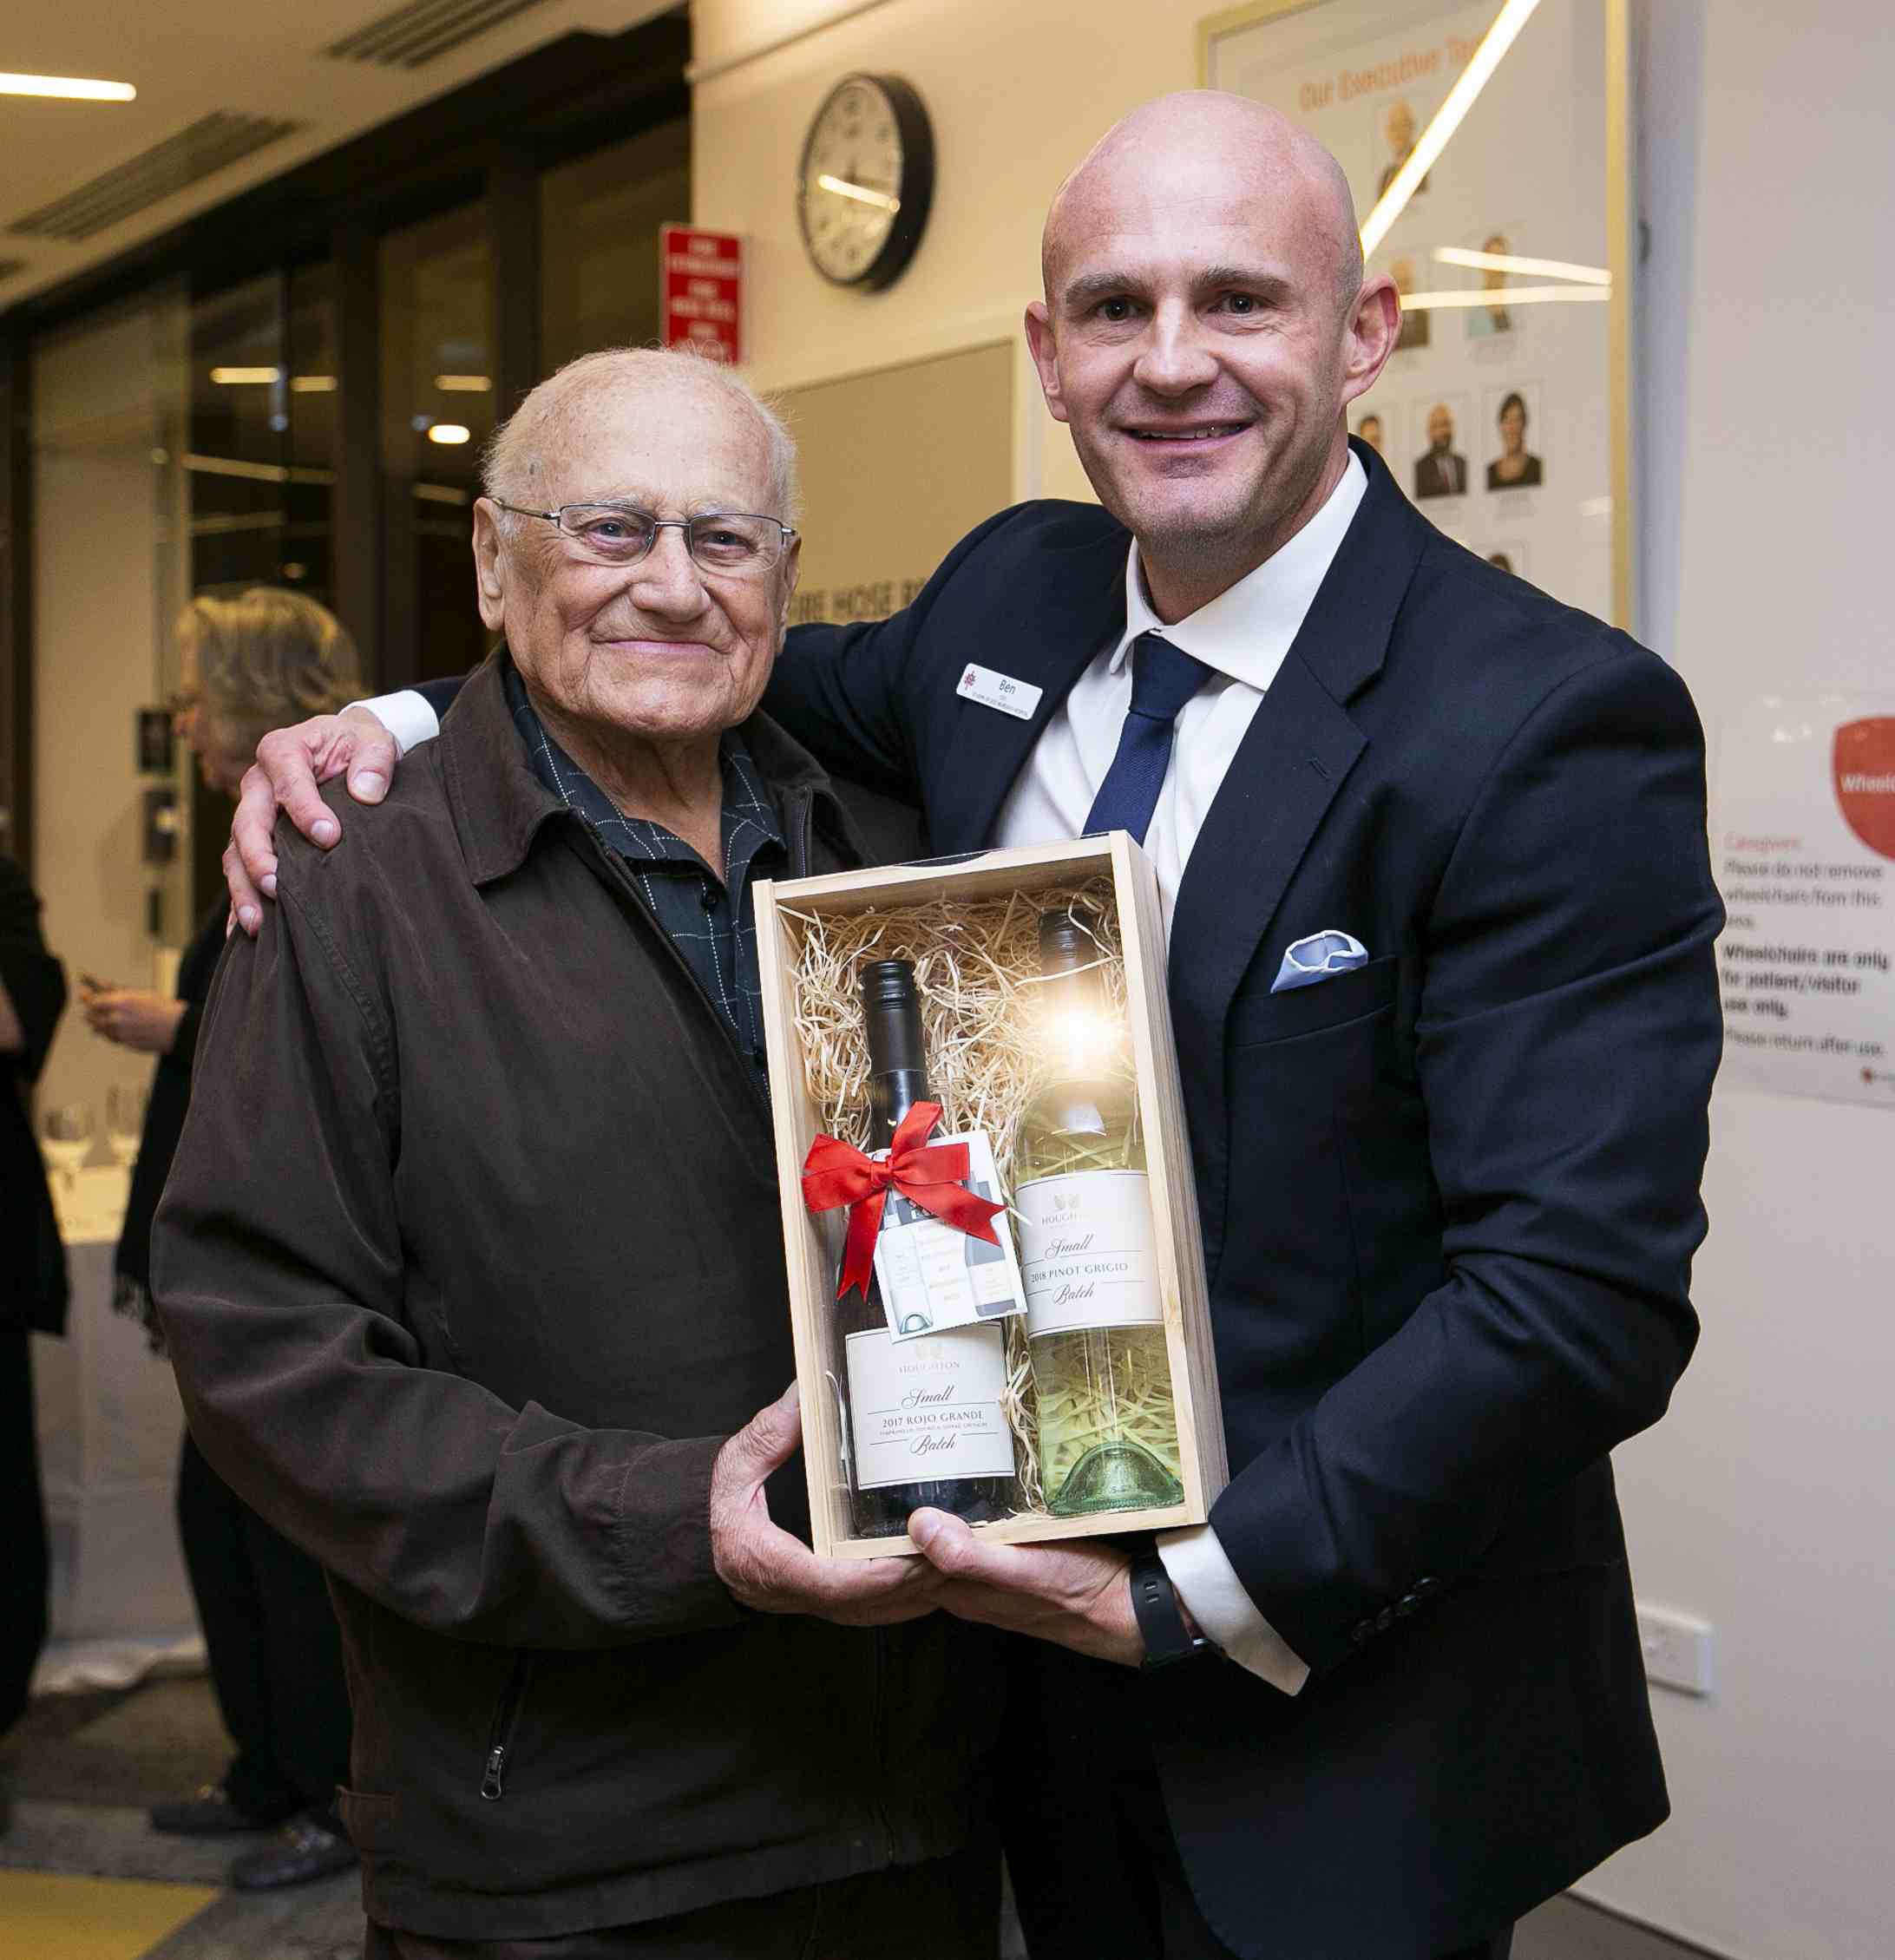 CEO of SJOG Hospital Ben Edwards presents Richard with a gift.